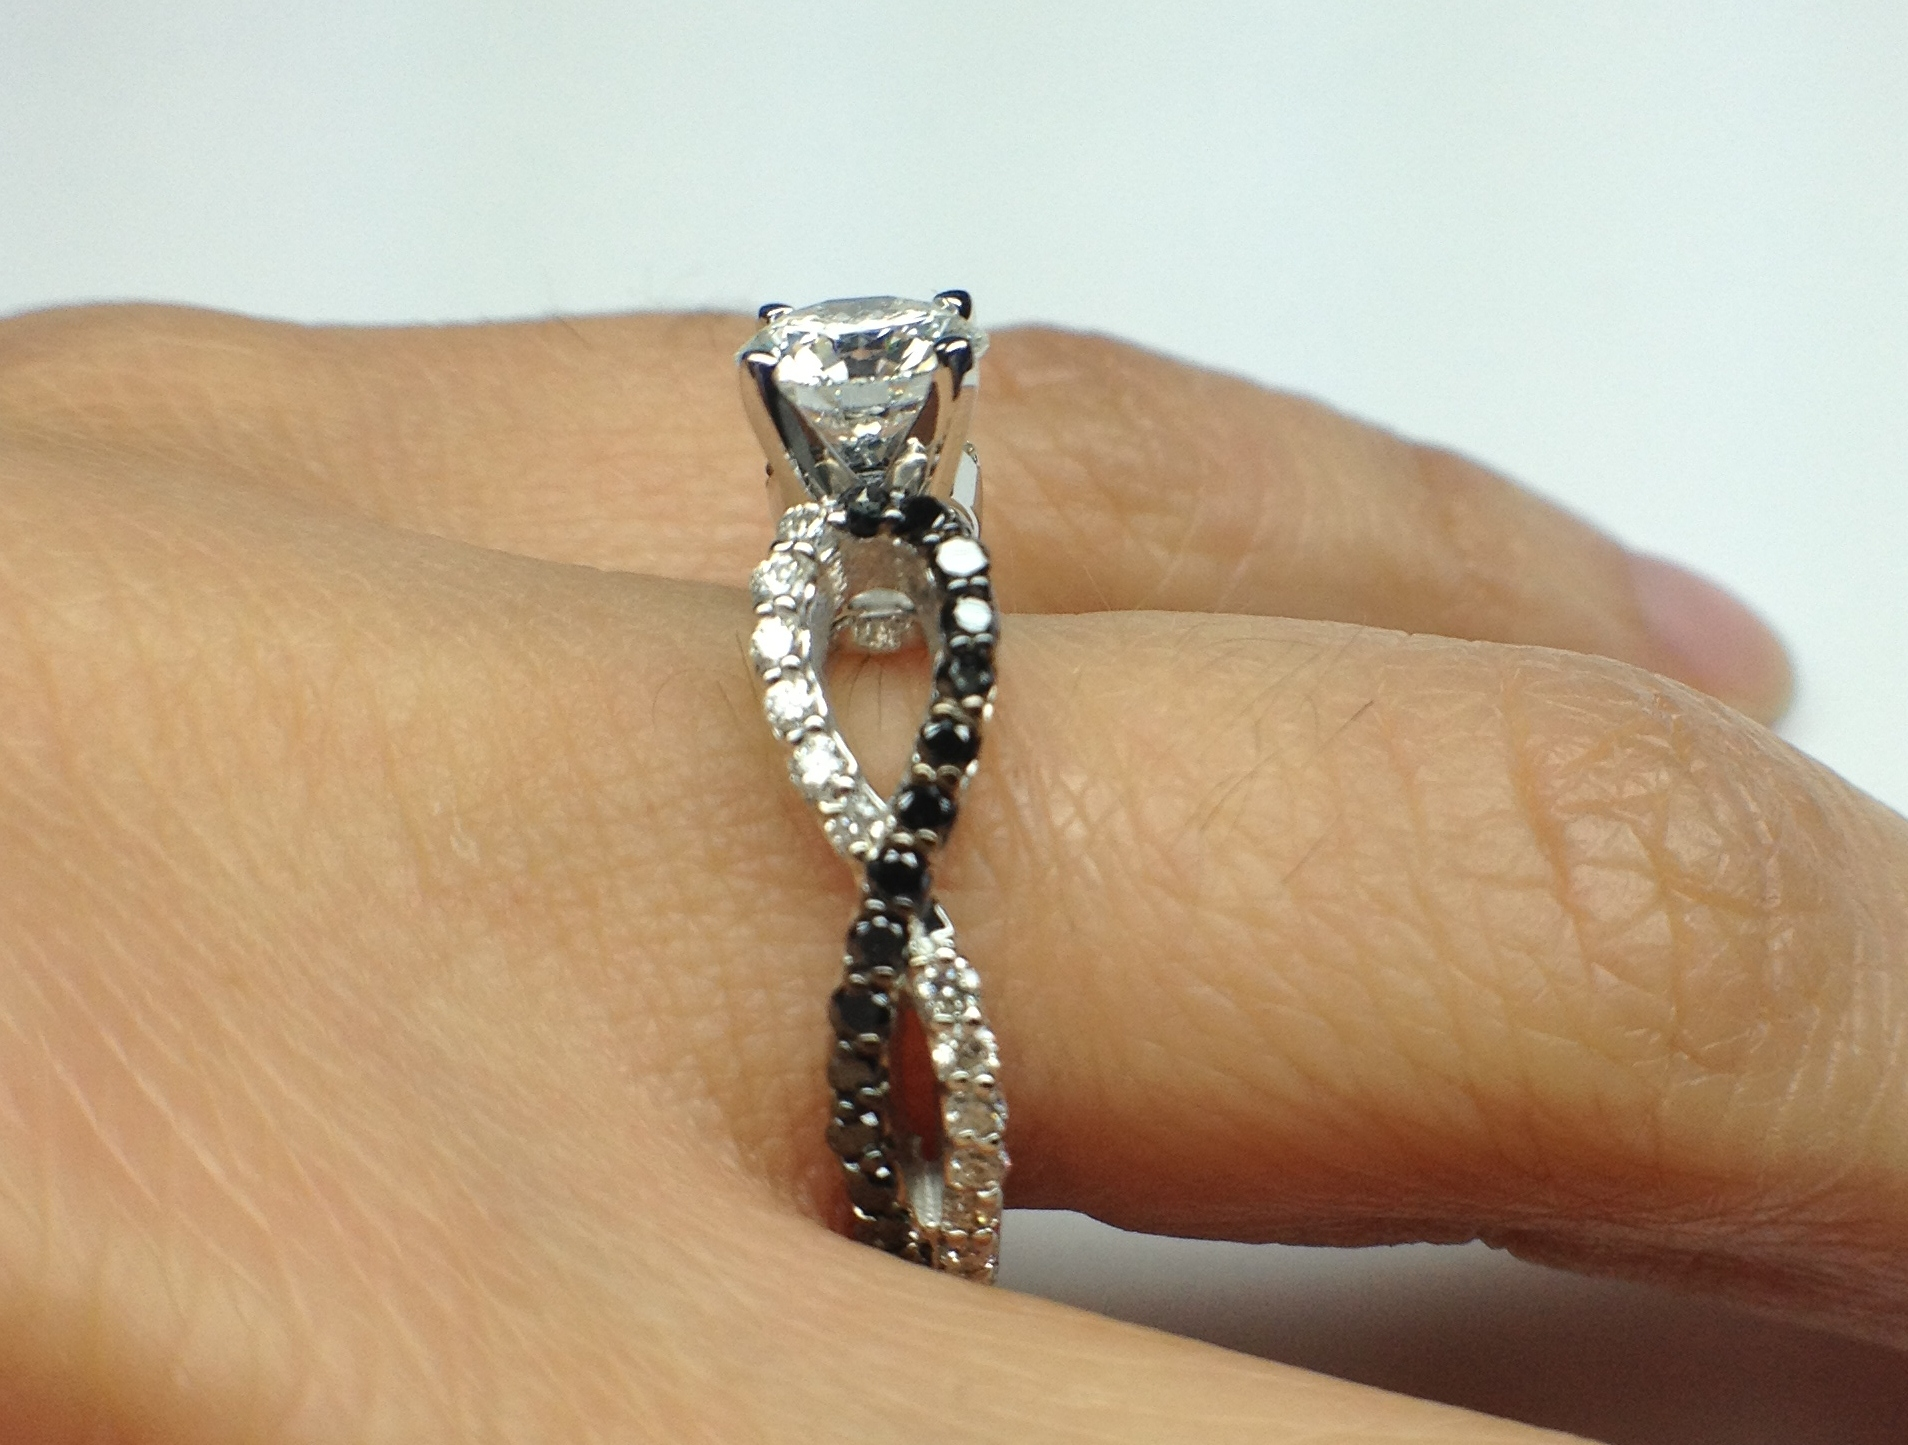 Black & White Infinity Diamond Engagement Ring in White Gold